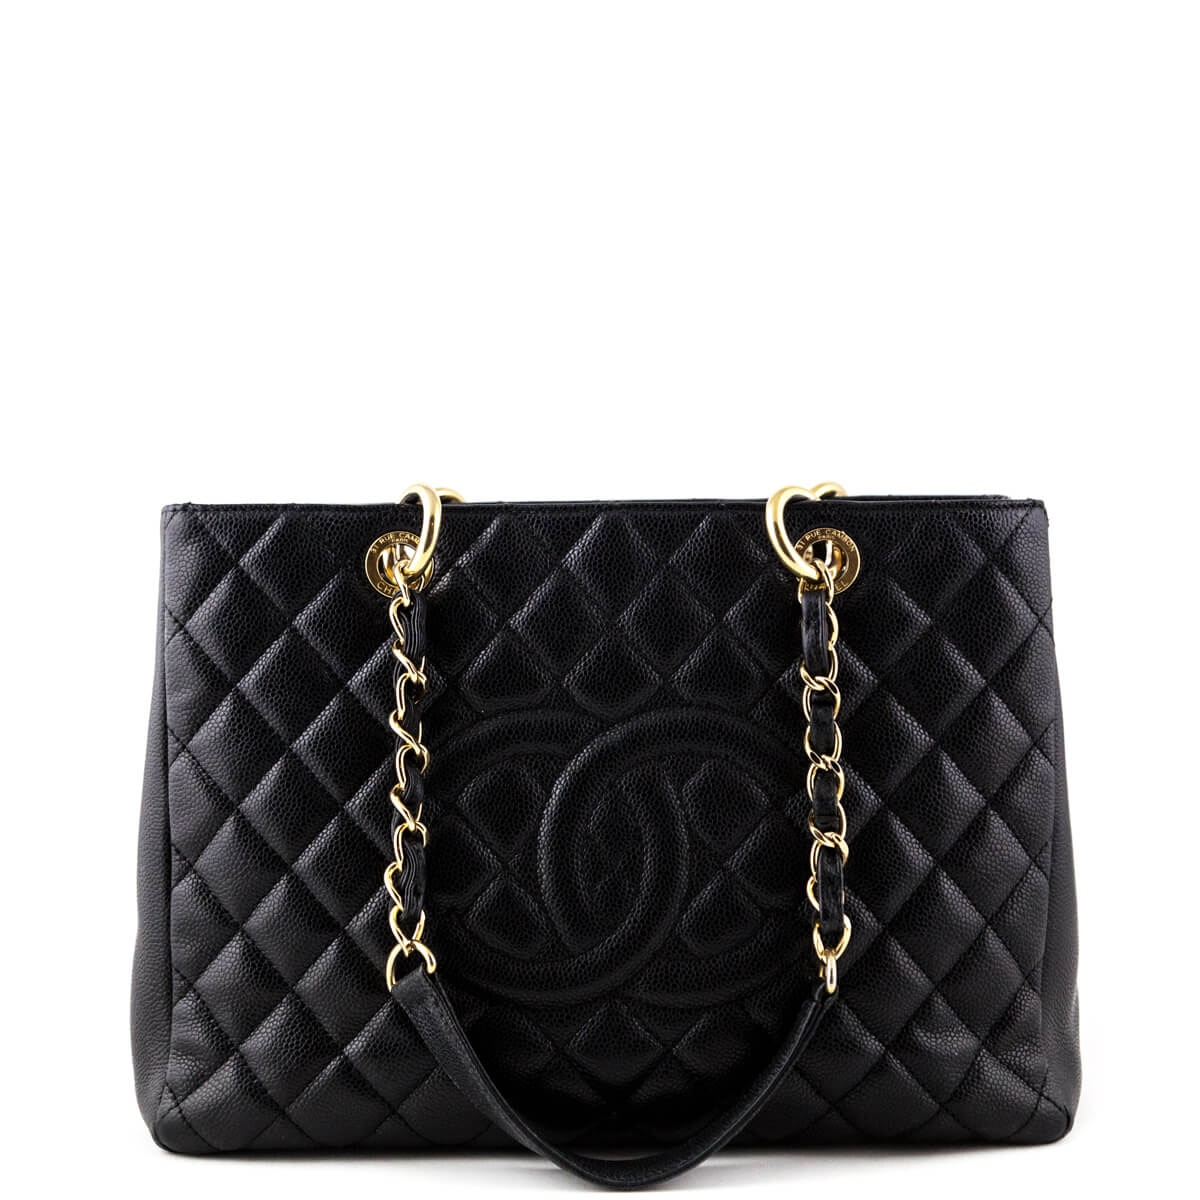 9df9dc7a7f5e Chanel Black Caviar Grand Shopping Tote GST GHW - LOVE that BAG - Preowned  Authentic Designer ...